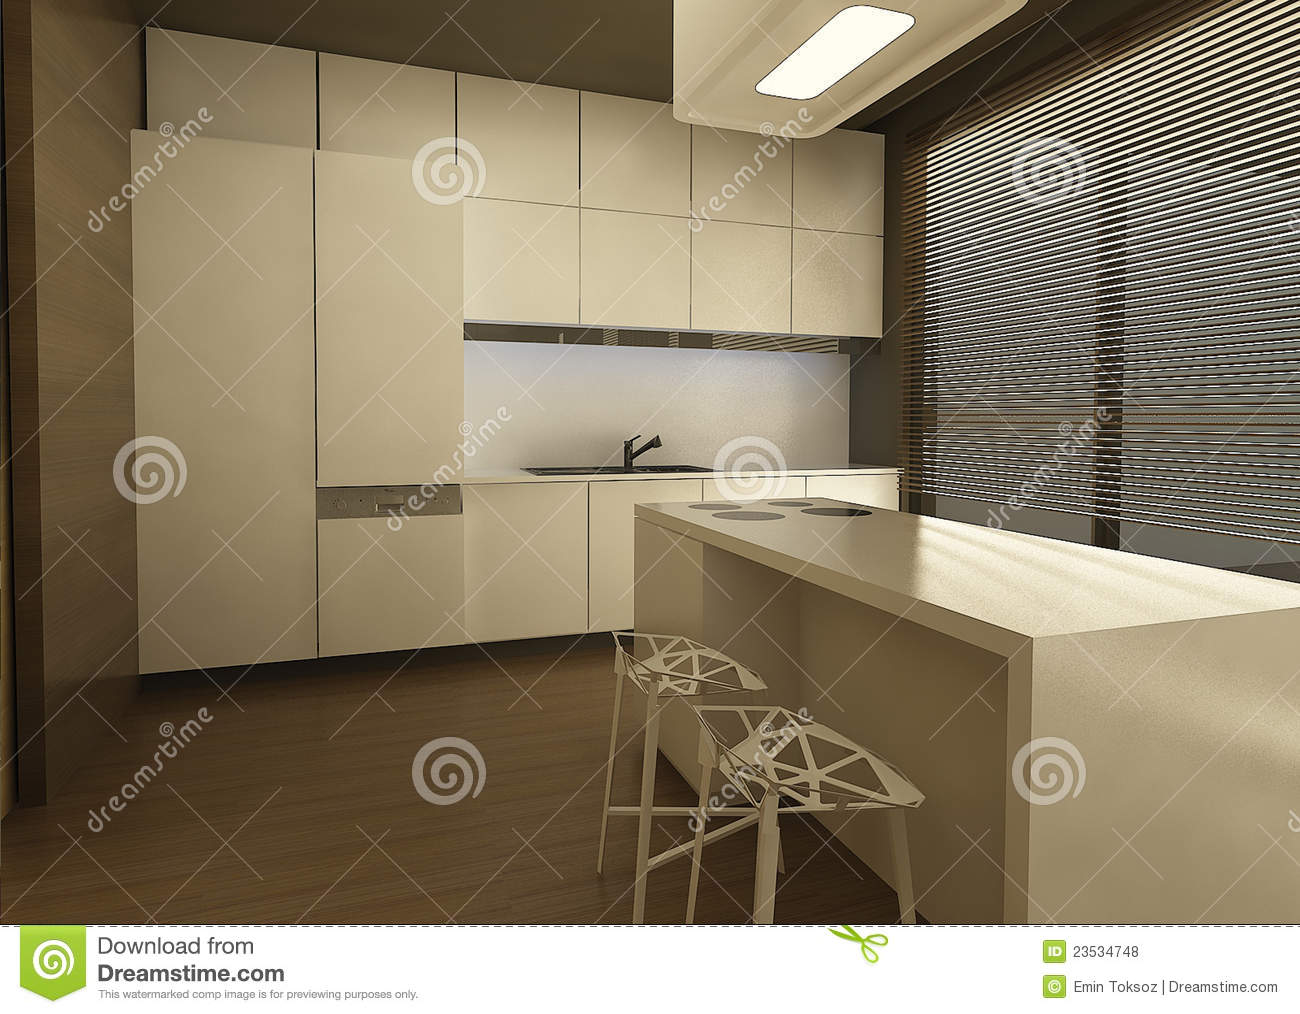 3d Kitchen Design Royalty Free Stock Photos Image 23534748